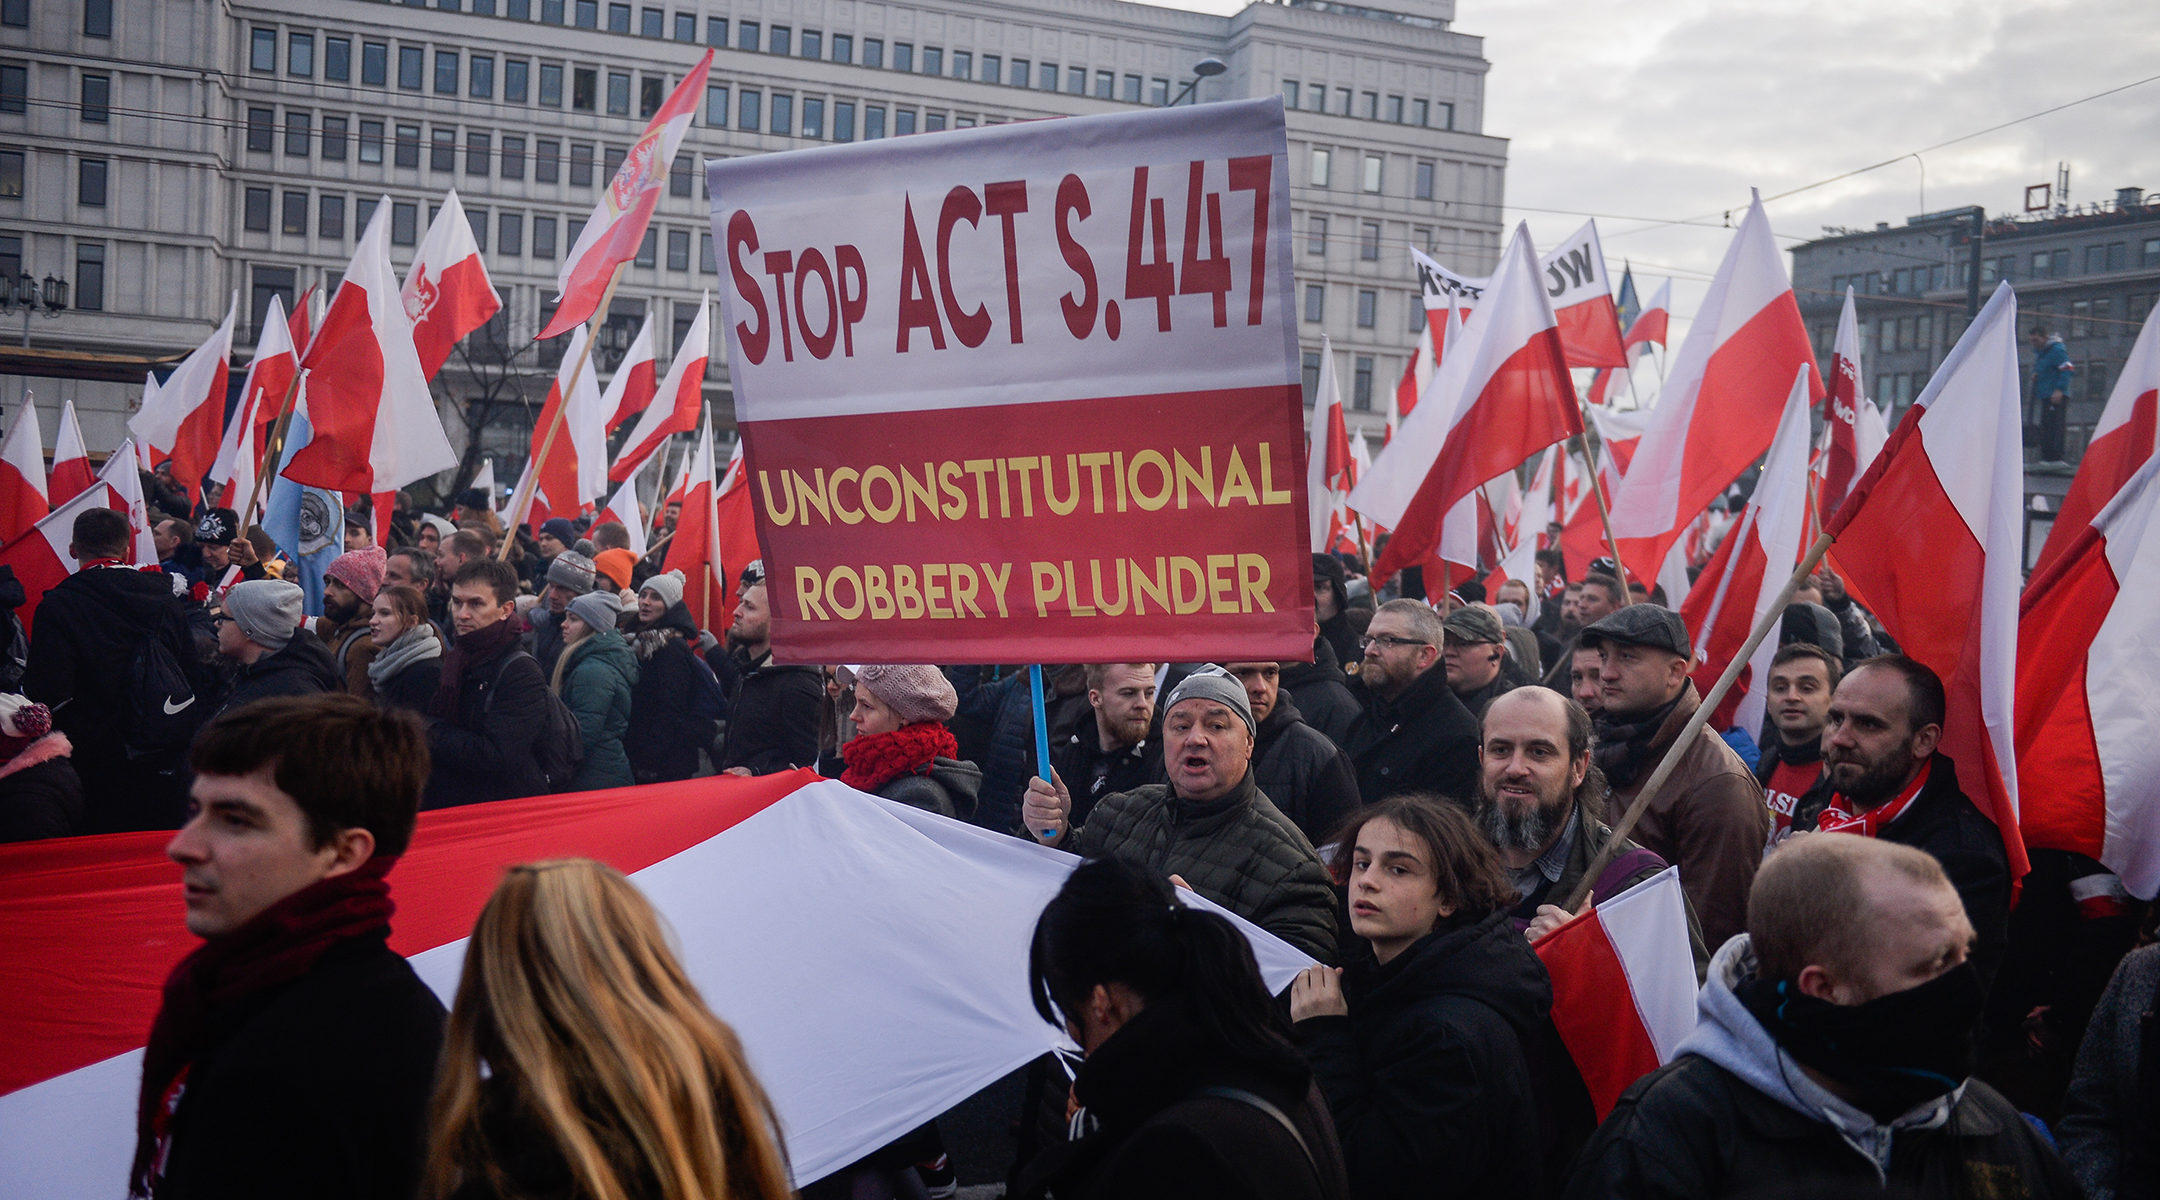 Demonstrators protesting US legislation requiring the return of property stolen from Jews in the Holocaust in Warsaw, Poland on Nov. 11, 2019. (Omar Marques/SOPA Images/LightRocket via Getty Images)